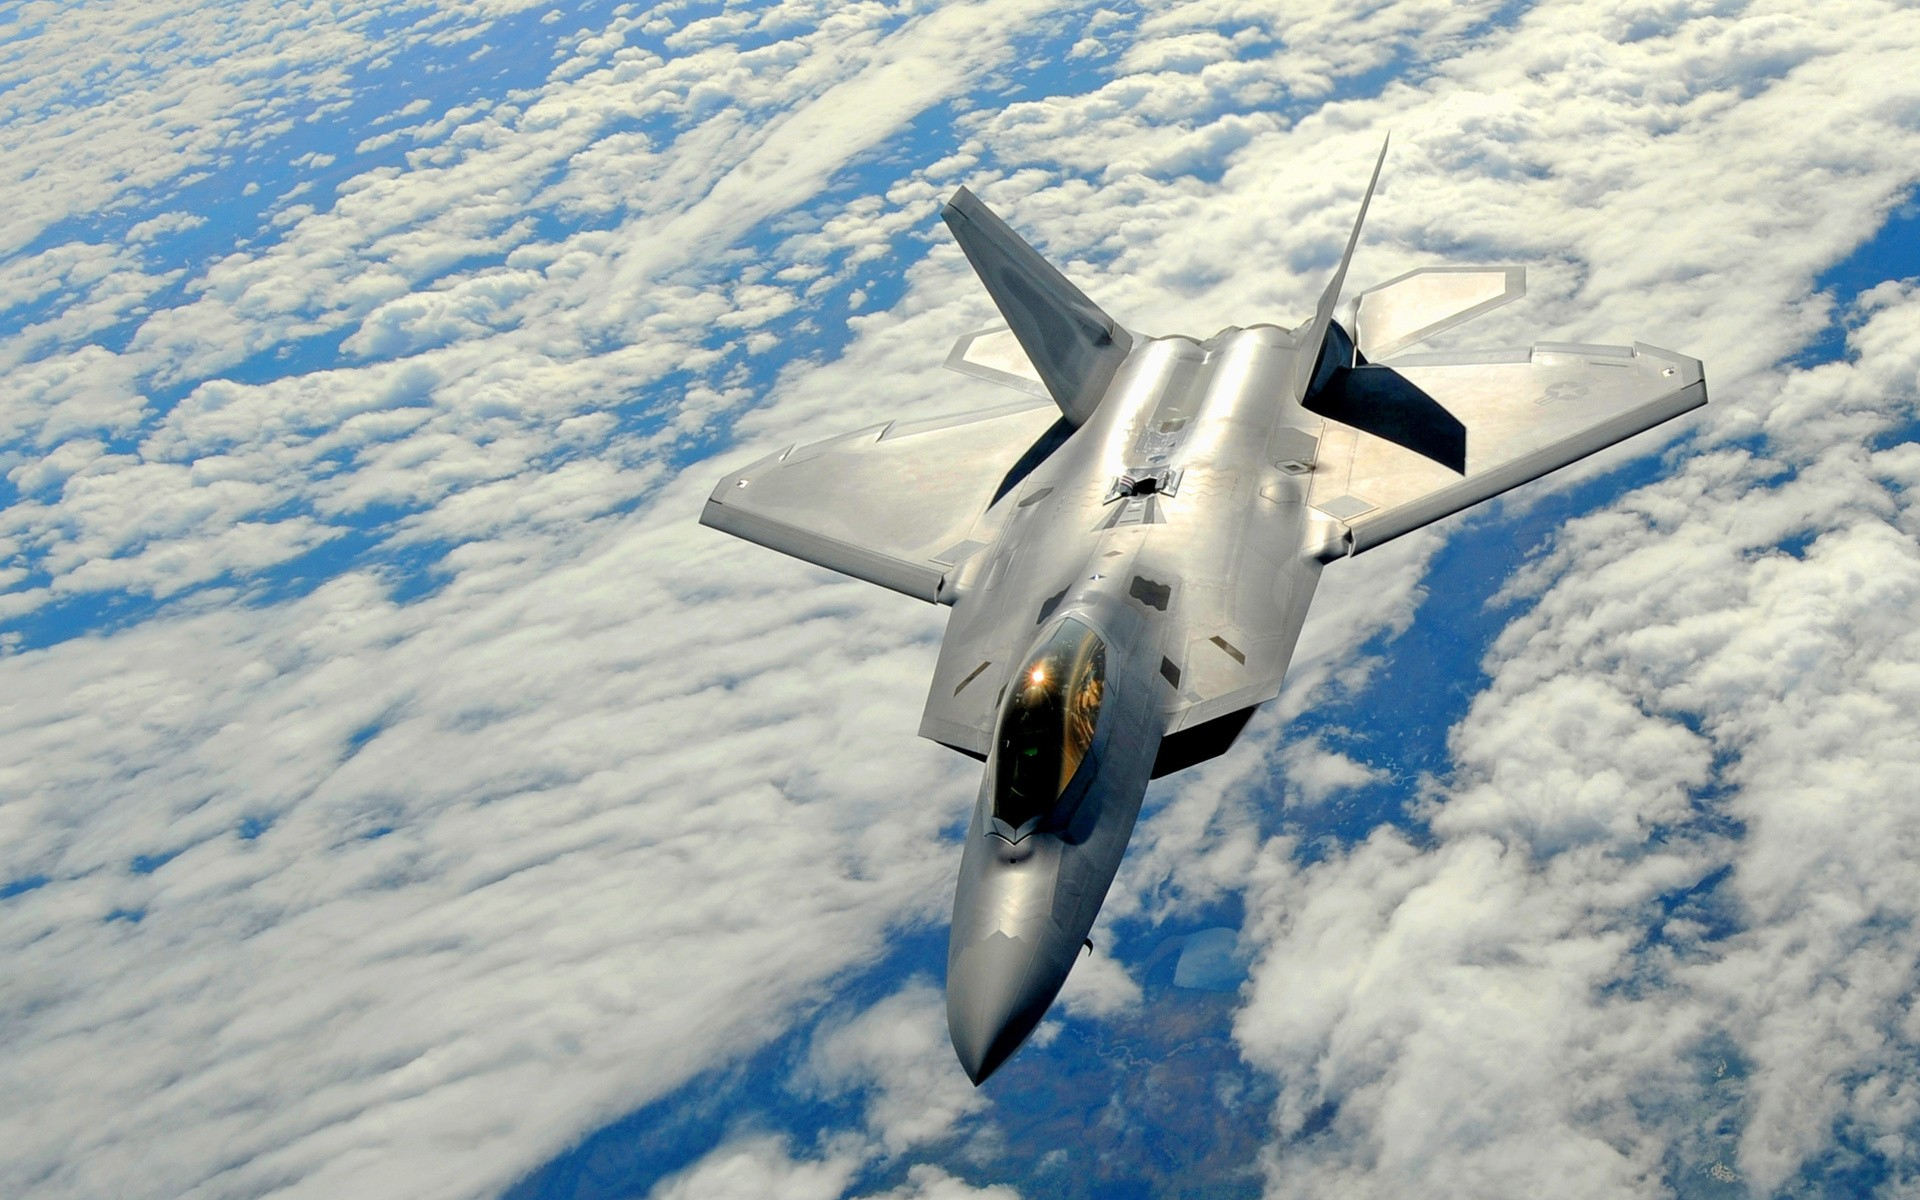 Download Wallpaper American military aircraft F22 Raptor wallpapers 1920x1200